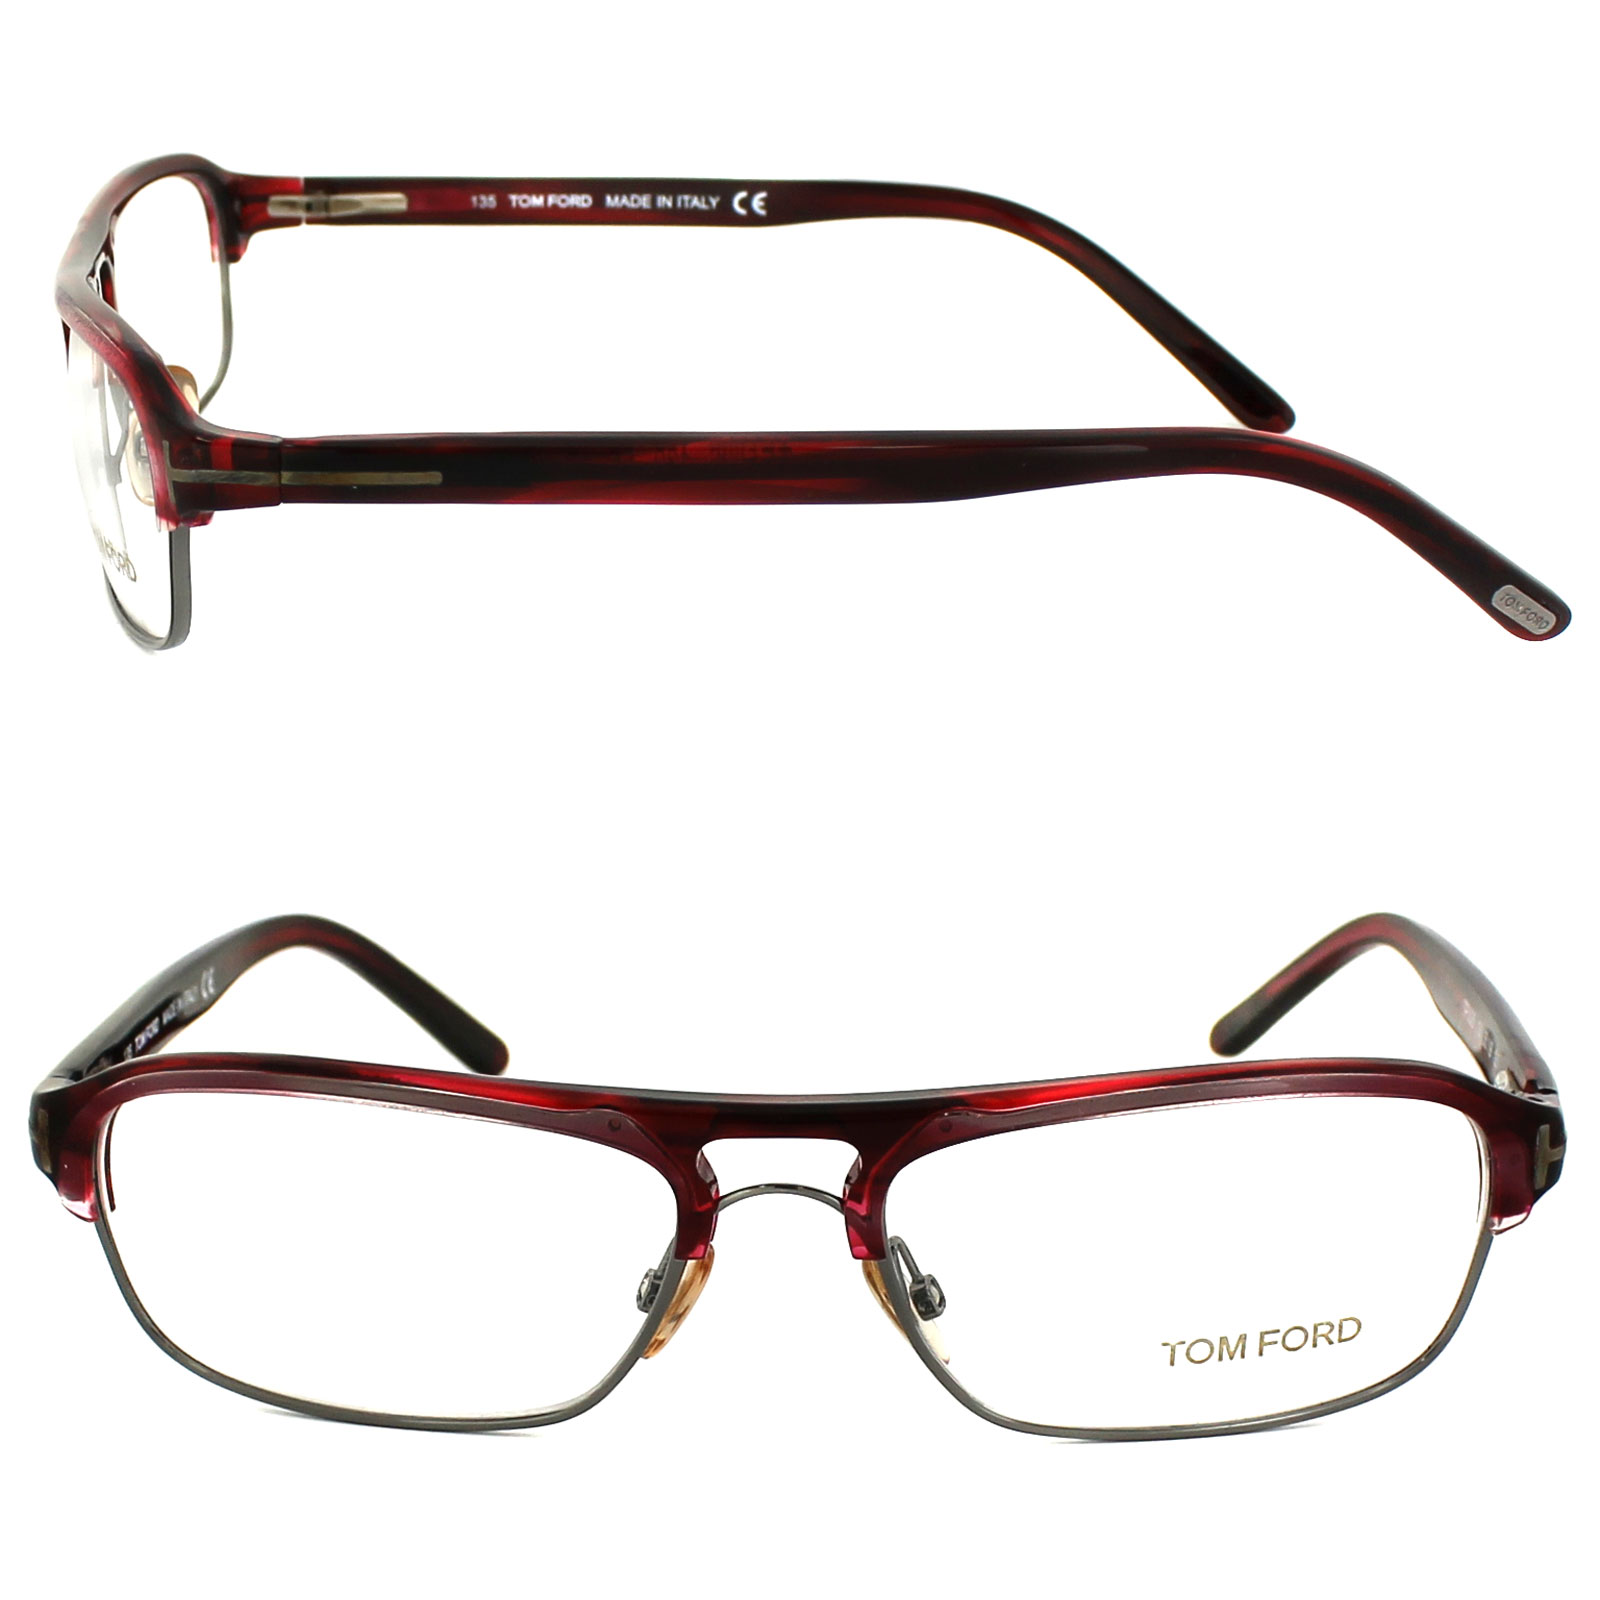 Glasses Frame Tom Ford : Cheap Tom Ford 5026 Glasses Frames - Discounted Sunglasses